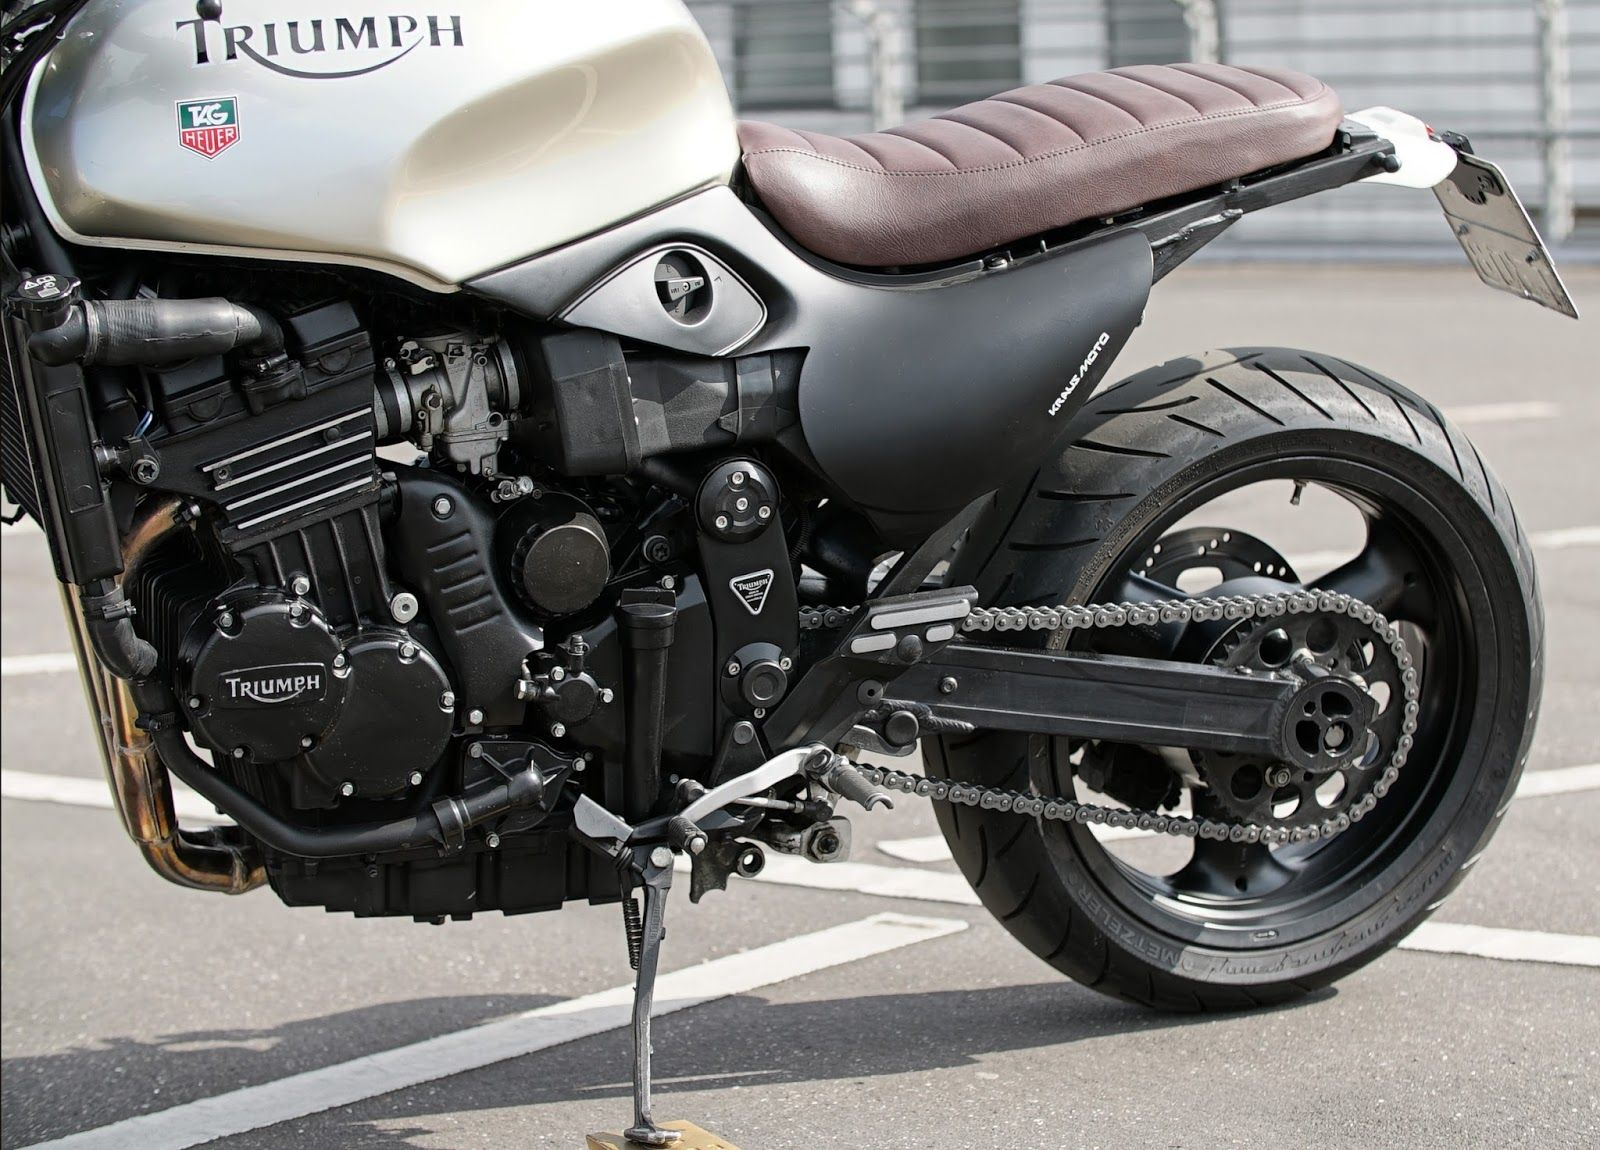 Triumph T300 Is A Motorcycle With A Thousand Resources It Is